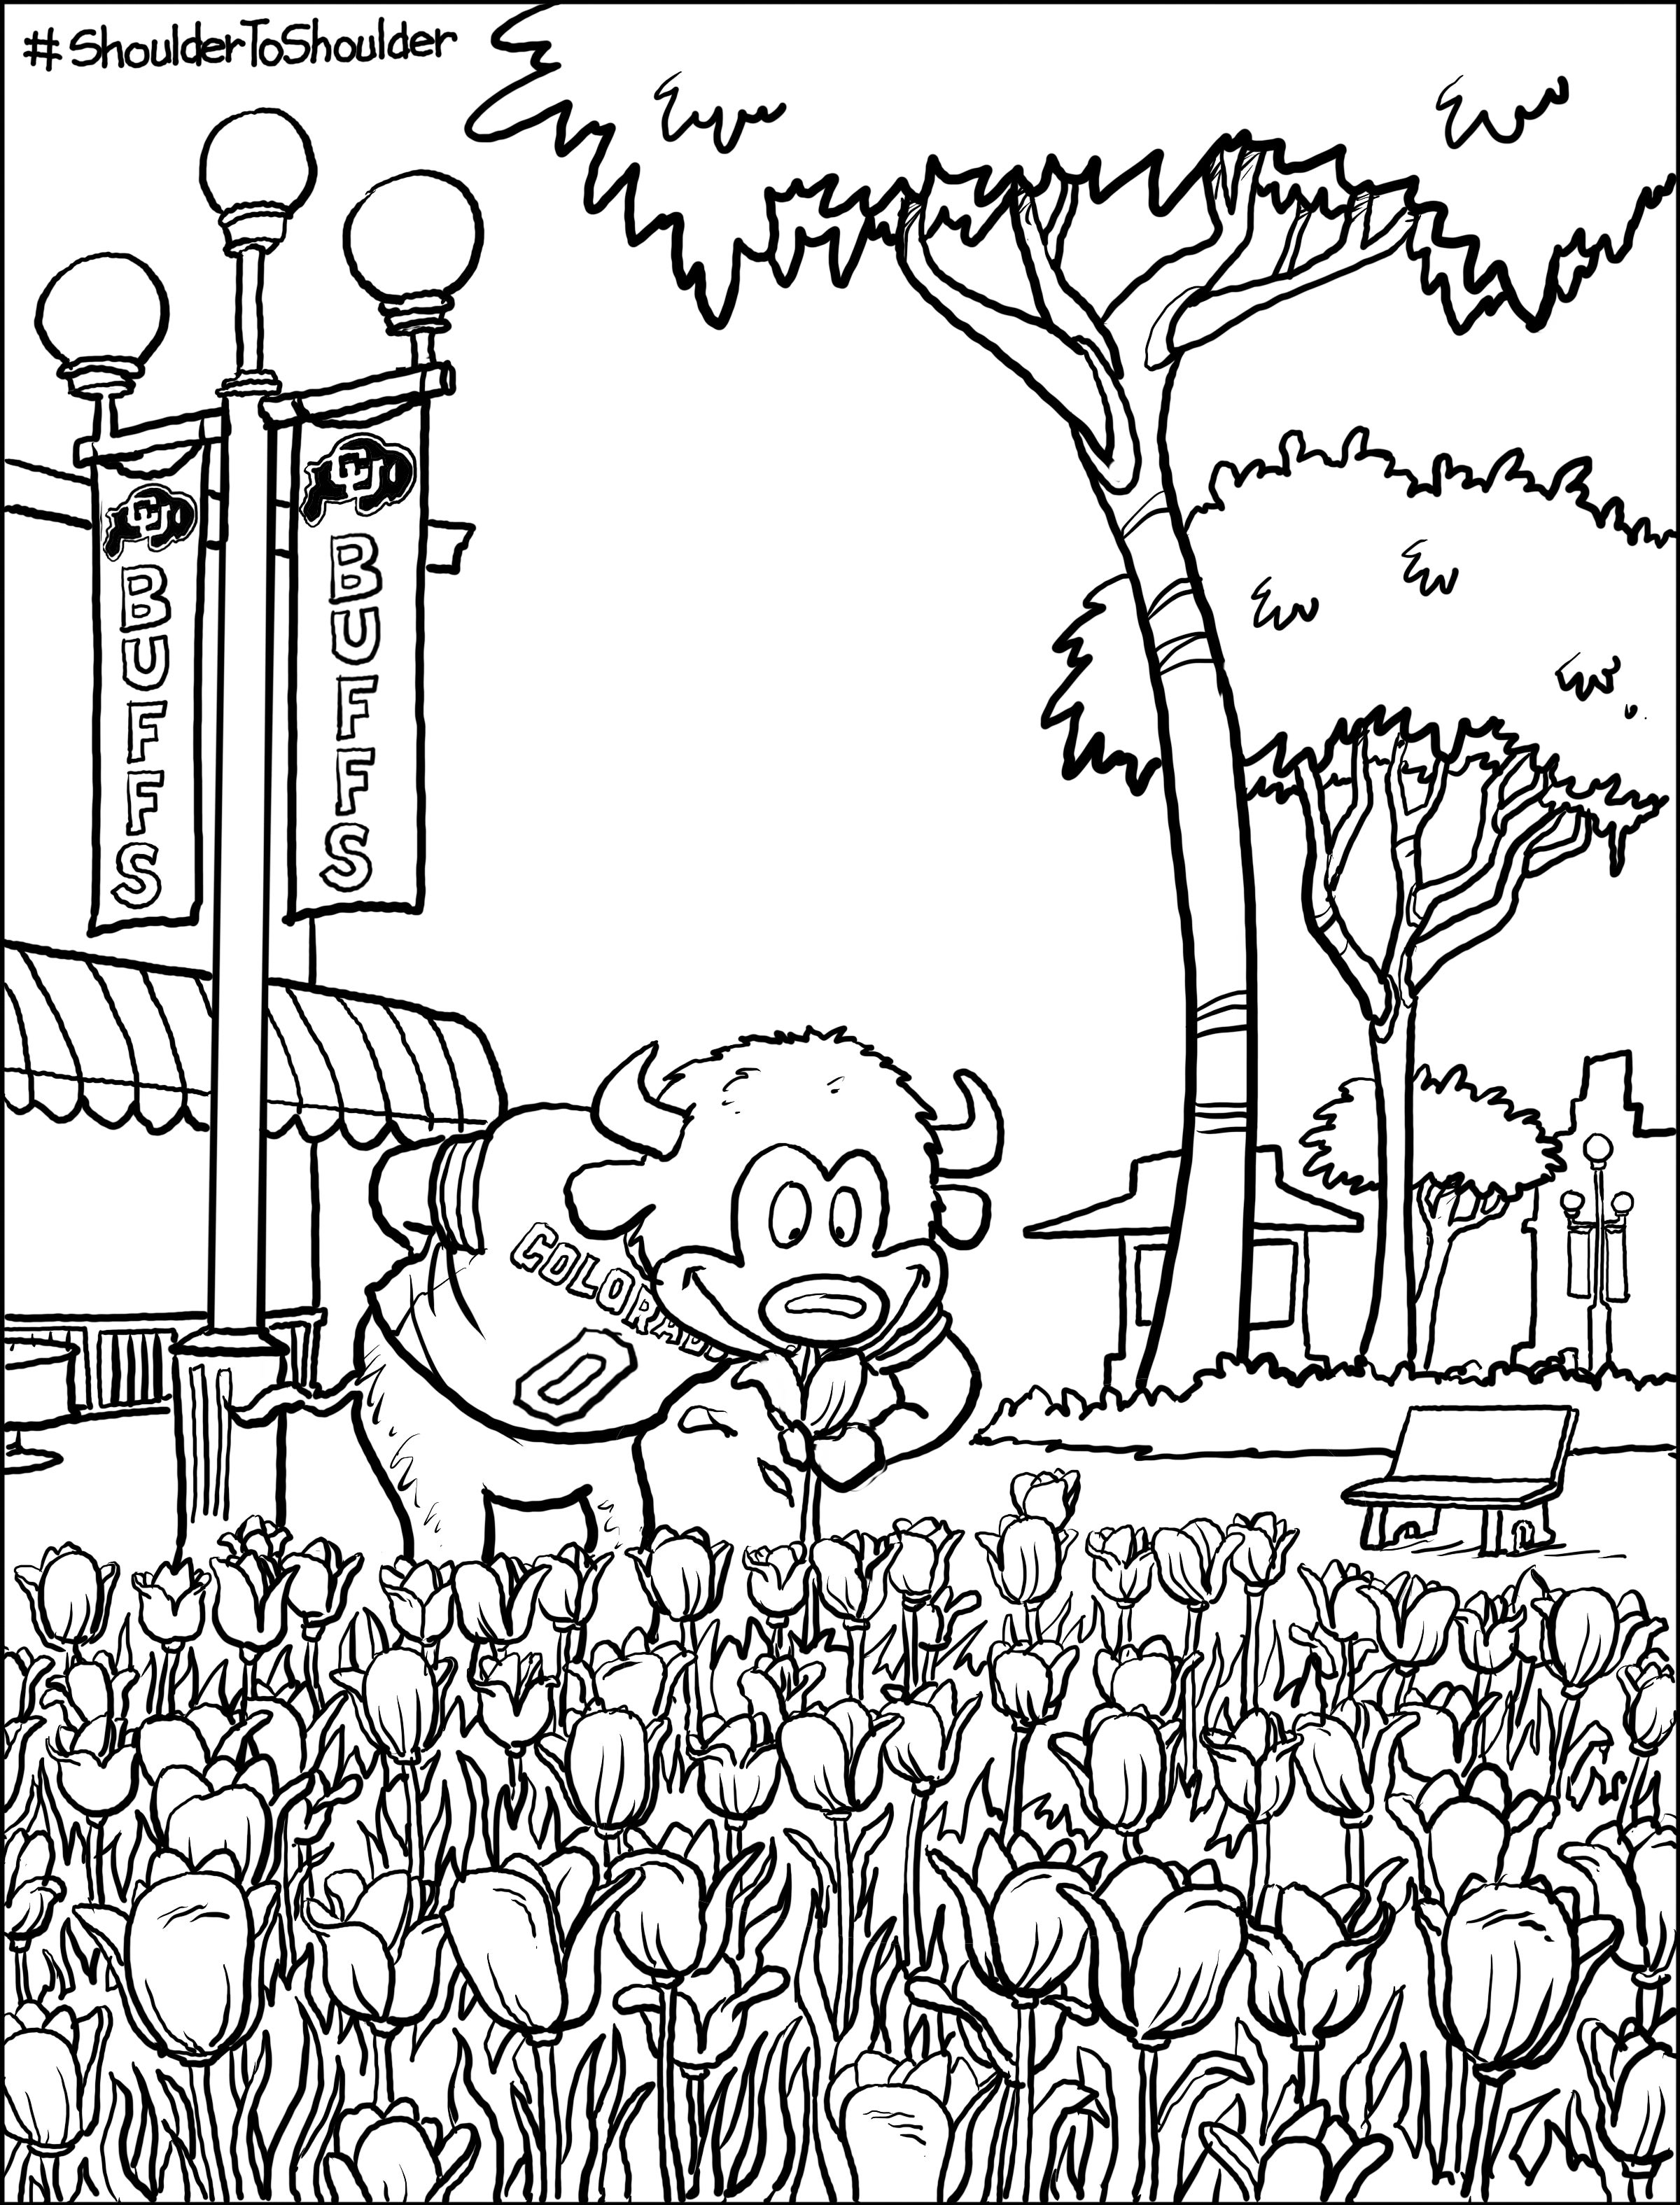 coloring page of Cu mascot Chip sniffing tulips